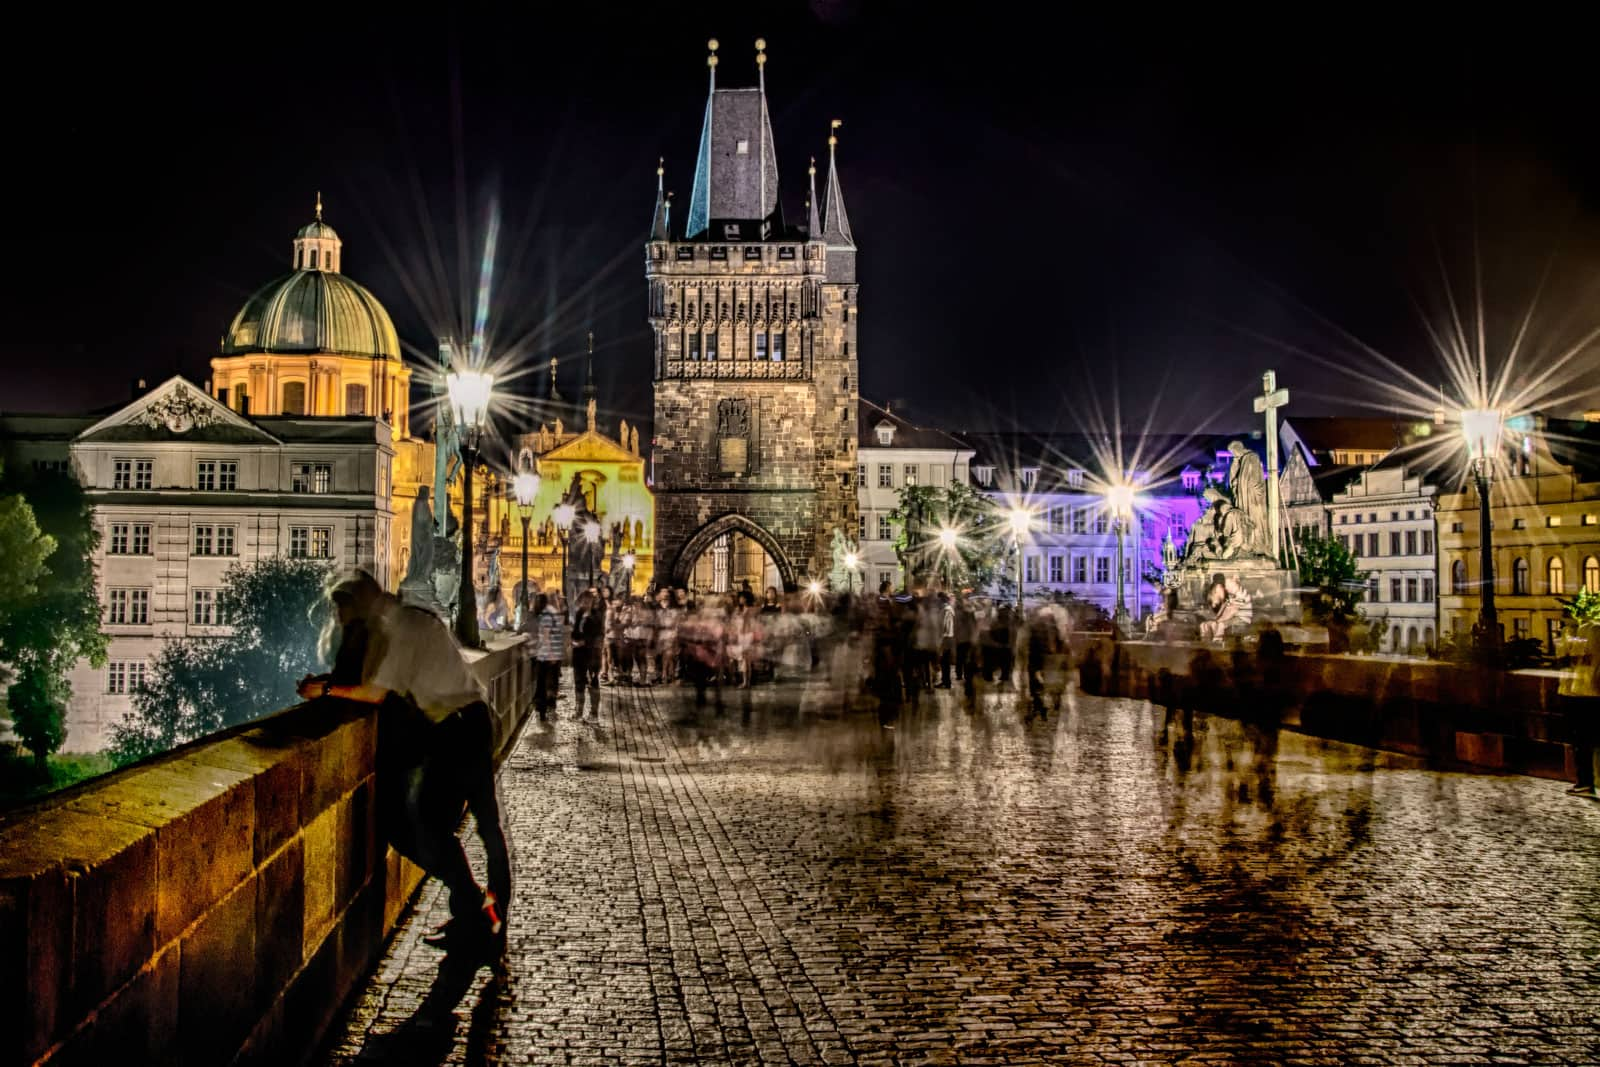 Night on Charles Bridge in Prague, Czech Republic